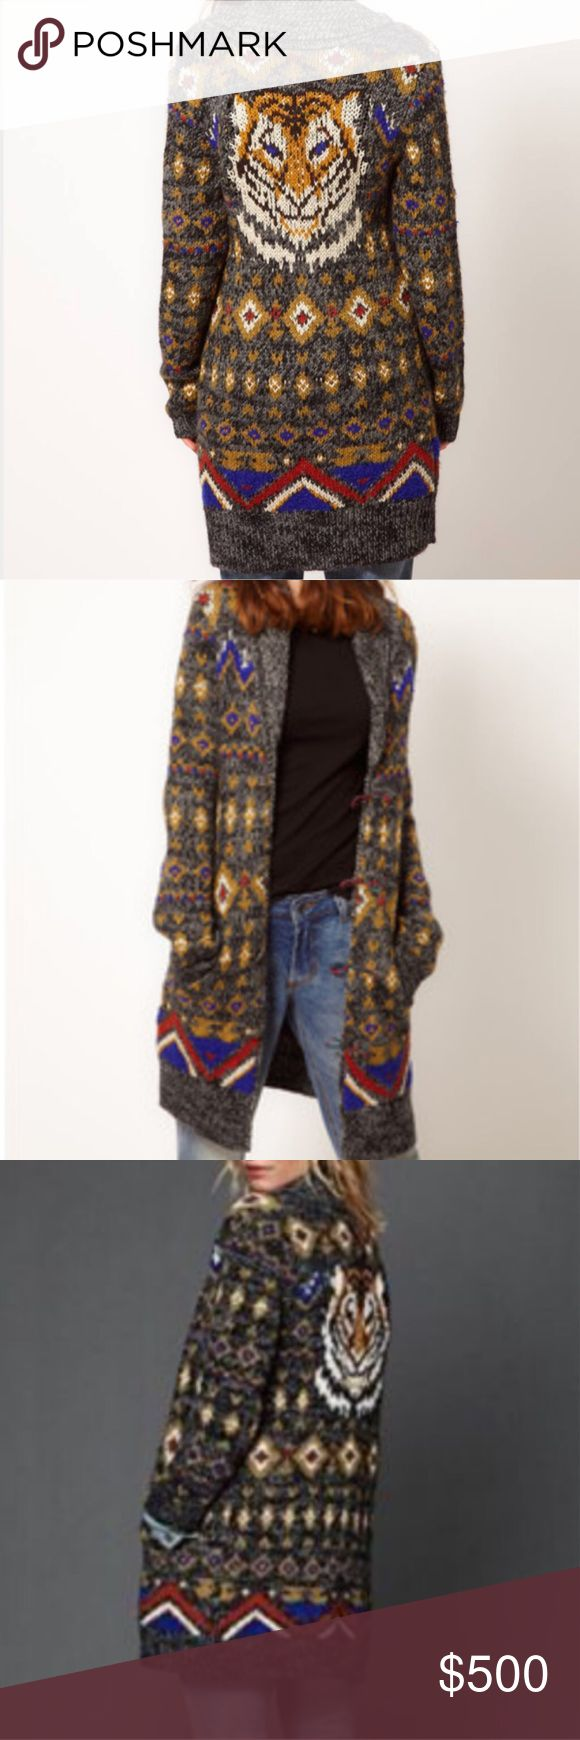 Gorgeous Free People Fierce 🐯 Duster This boyfriend cardigan by Free People is made from a super soft wool blend. The details include: a jacquard knit design with tiger motif to the reverse, folded collar, engraved buttons with twisted loop closure, pockets to the hips and a wide ribbed hem. The cardigan has an oversized fit. 100% Other fibres. Excellent like new condition. As seen on Pretty Little Liars. A rare find! Sold out in stores! **COMING SOON please like to be notified of arrival…